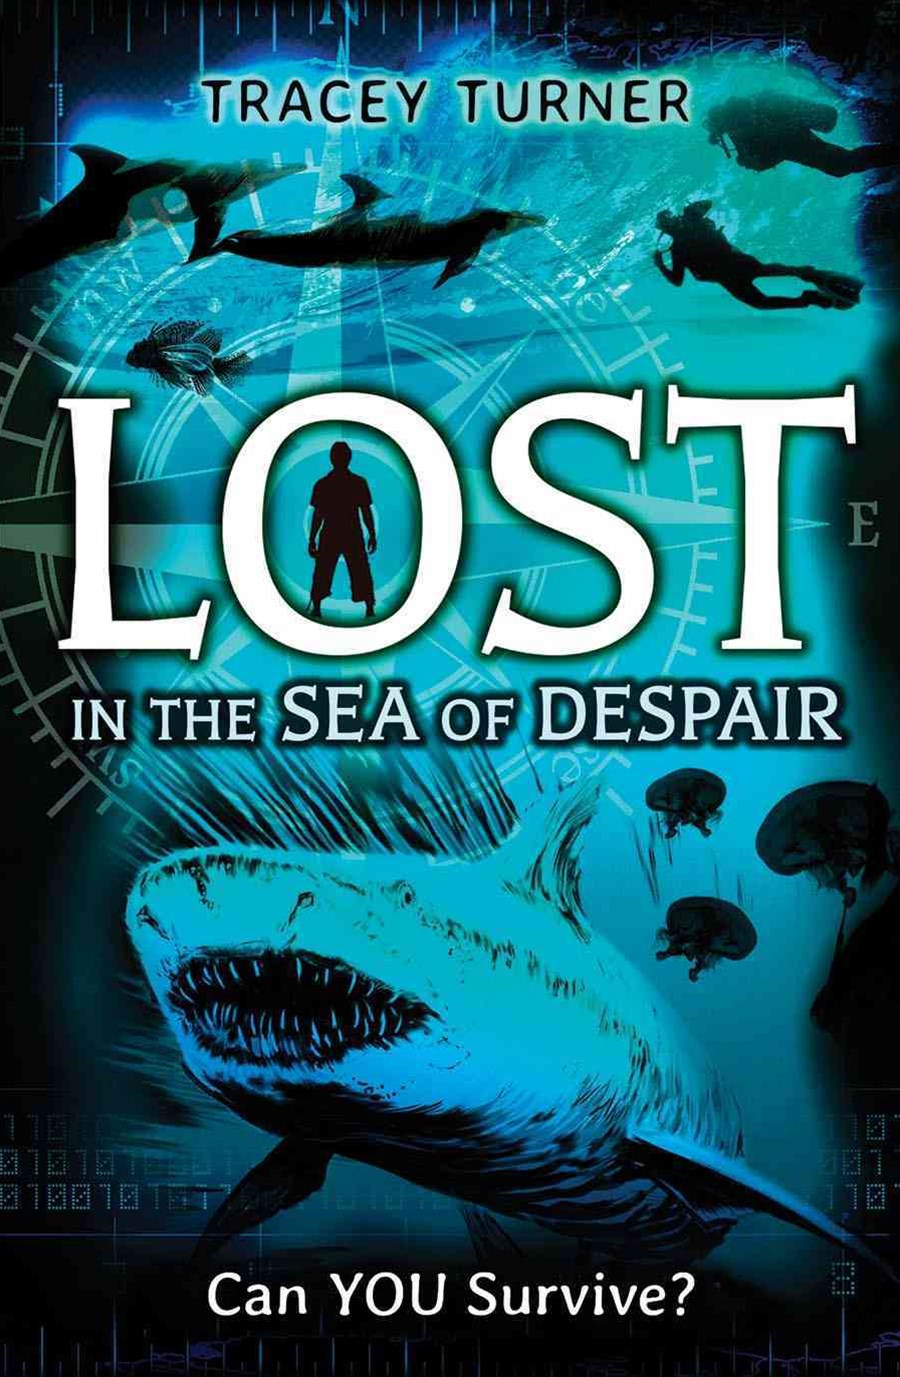 Lost in the Sea of Despair